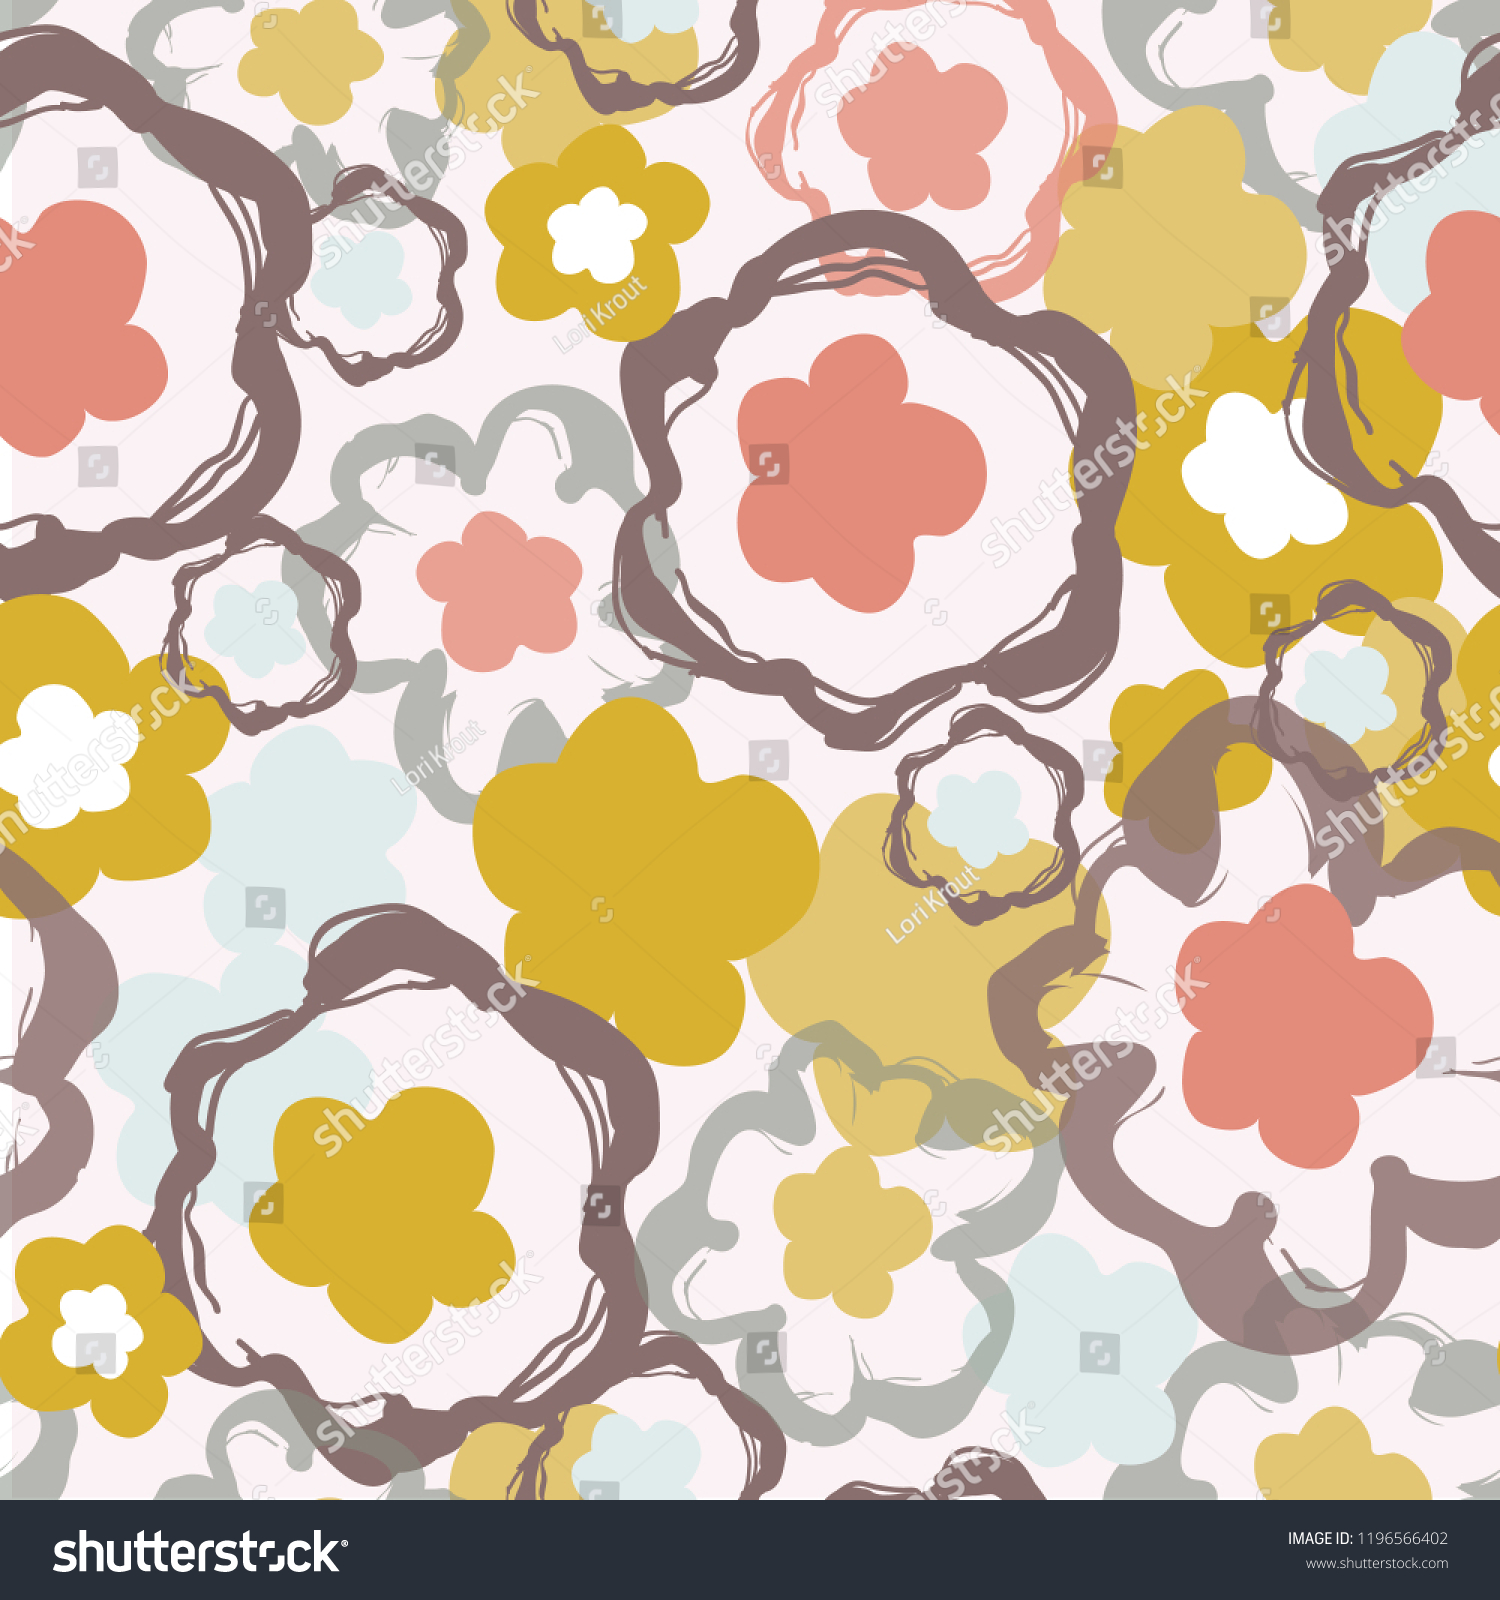 Retro 1960s Floral Pattern Pop Art Stock Image Download Now